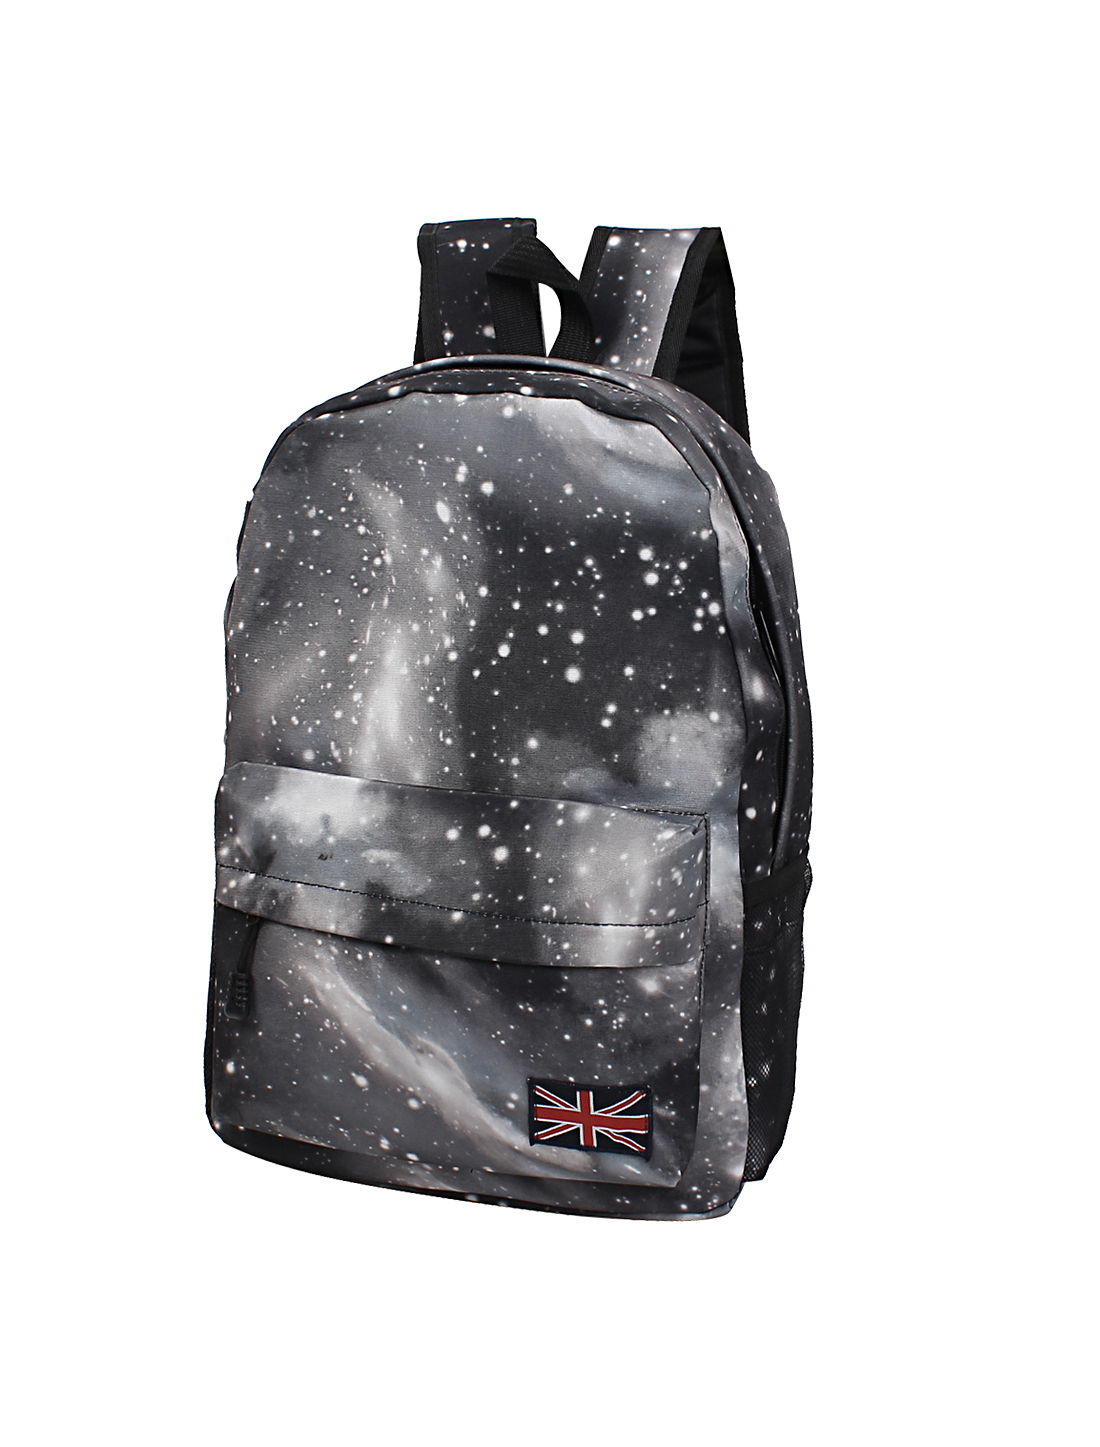 New Galaxy Space Backpack Rucksack Canvas Bag School Bookbag Satchel Black